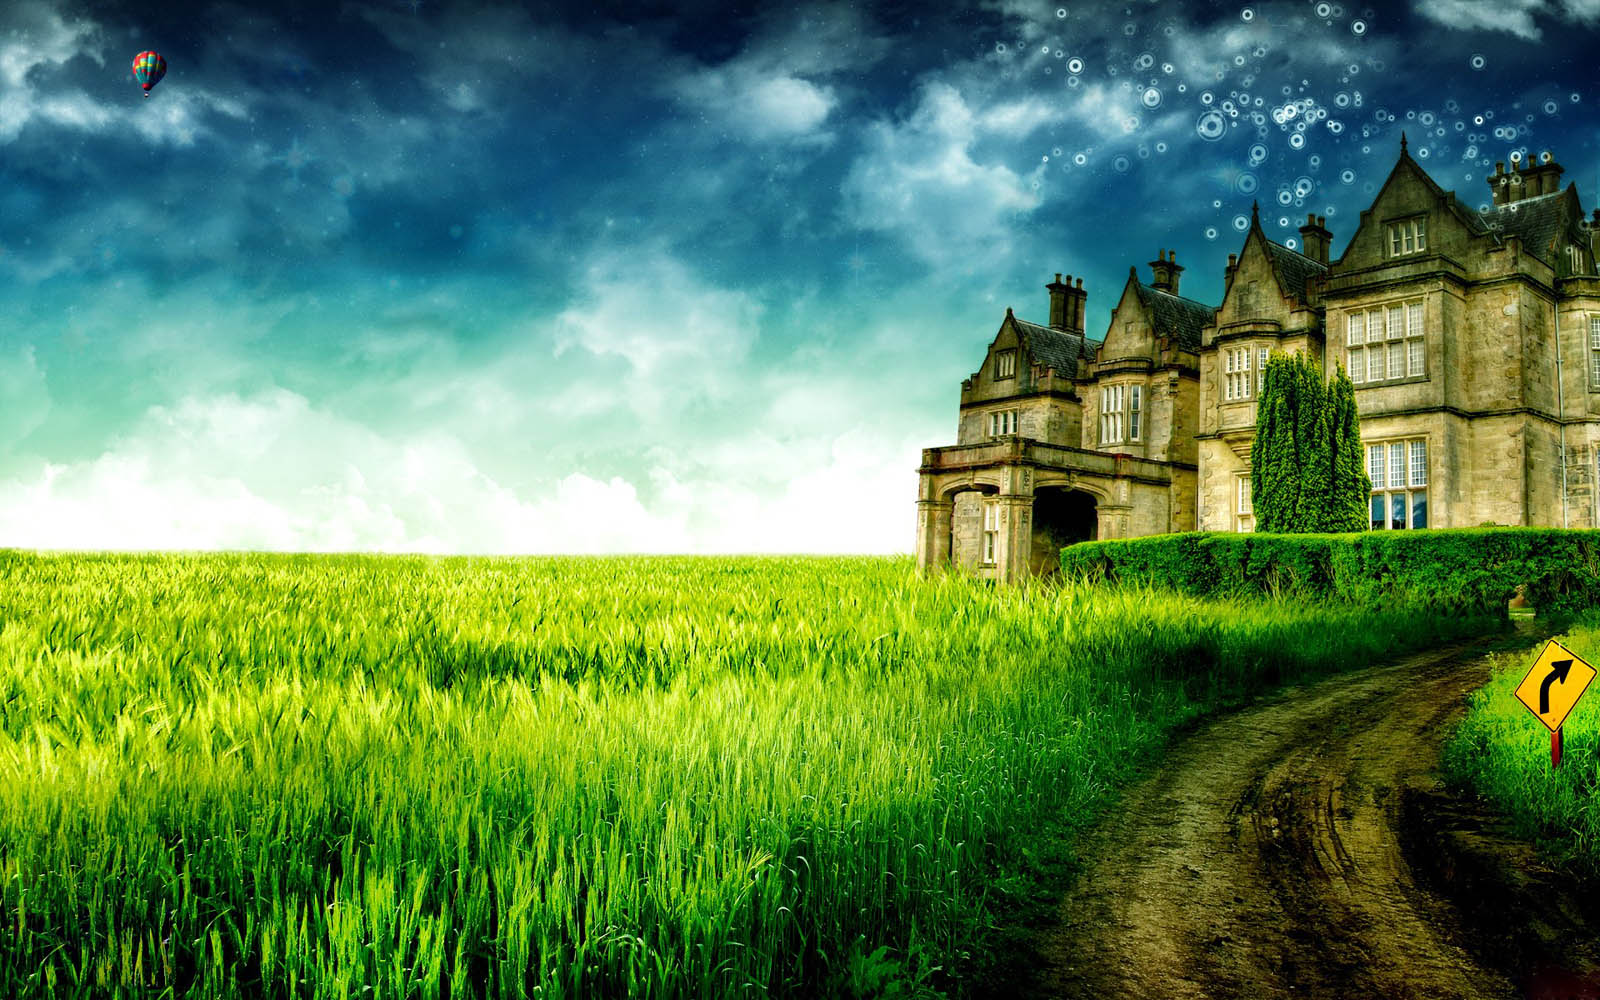 Wallpapers art nature wallpapers for 3d wallpaper of house